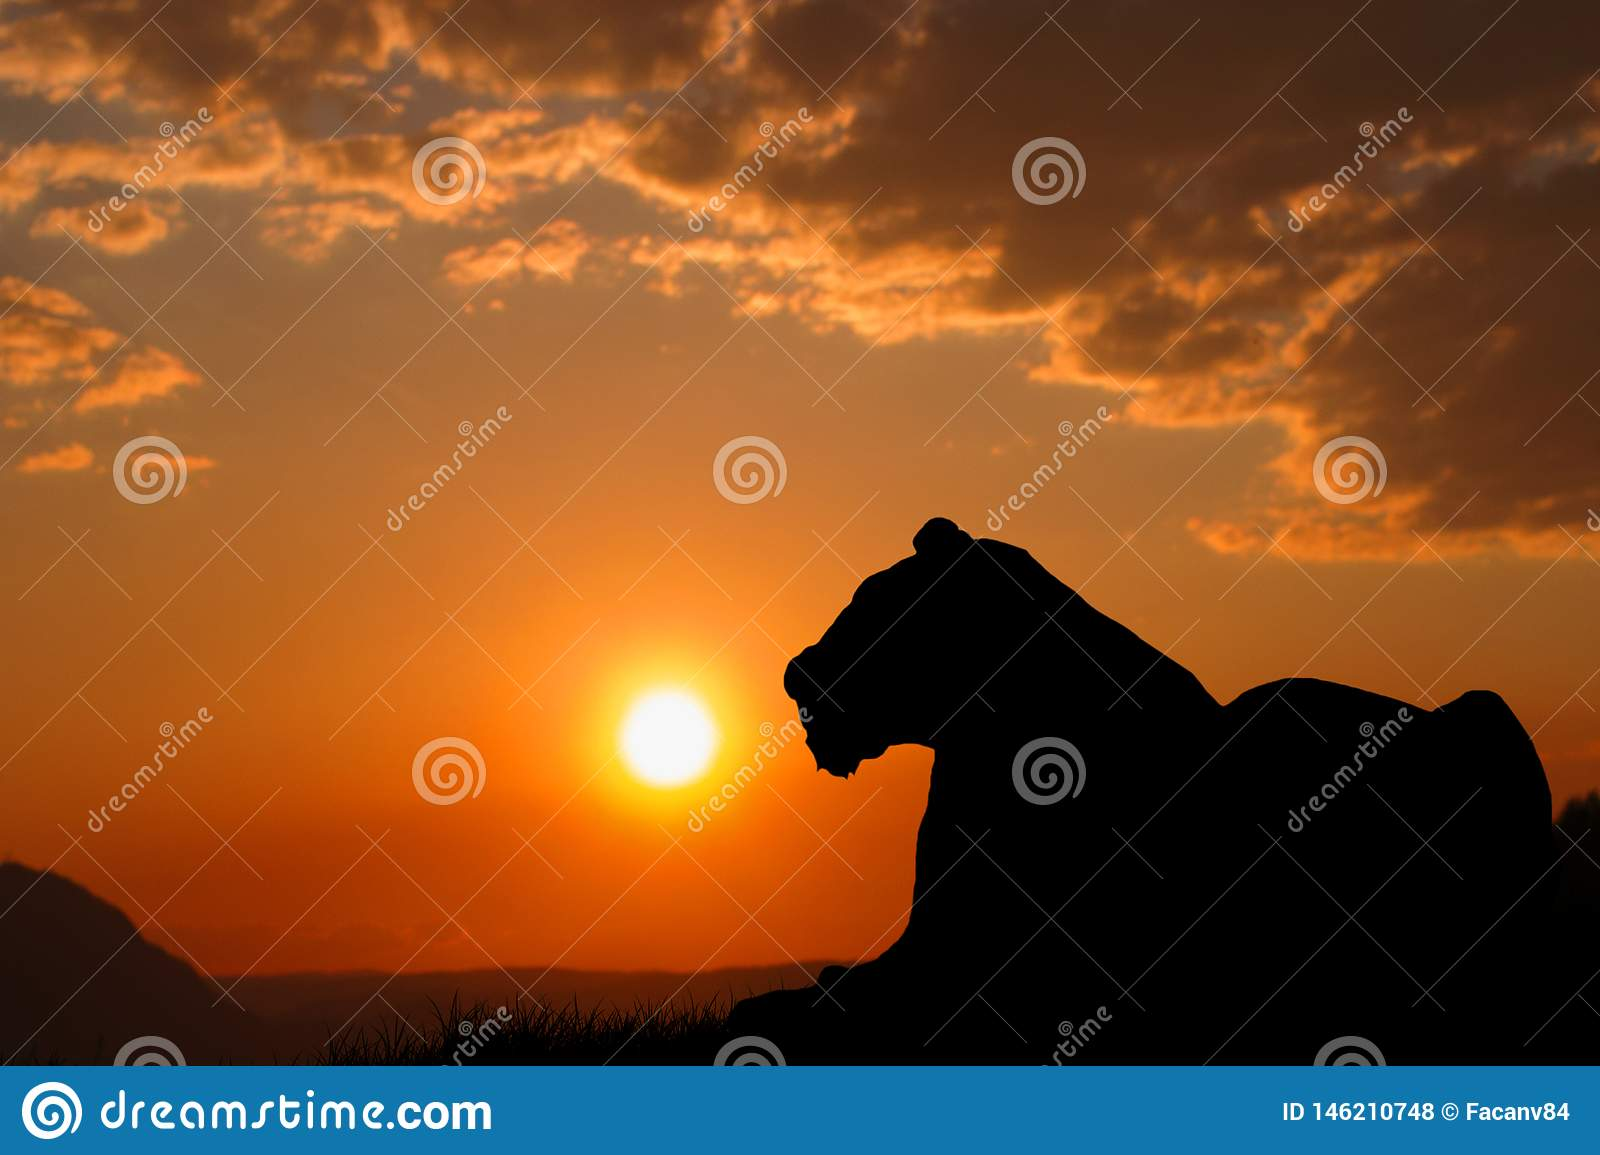 A big tiger silhouette. The tiger is resting and watching the environment. Beautiful sunset and orange sky in the background.